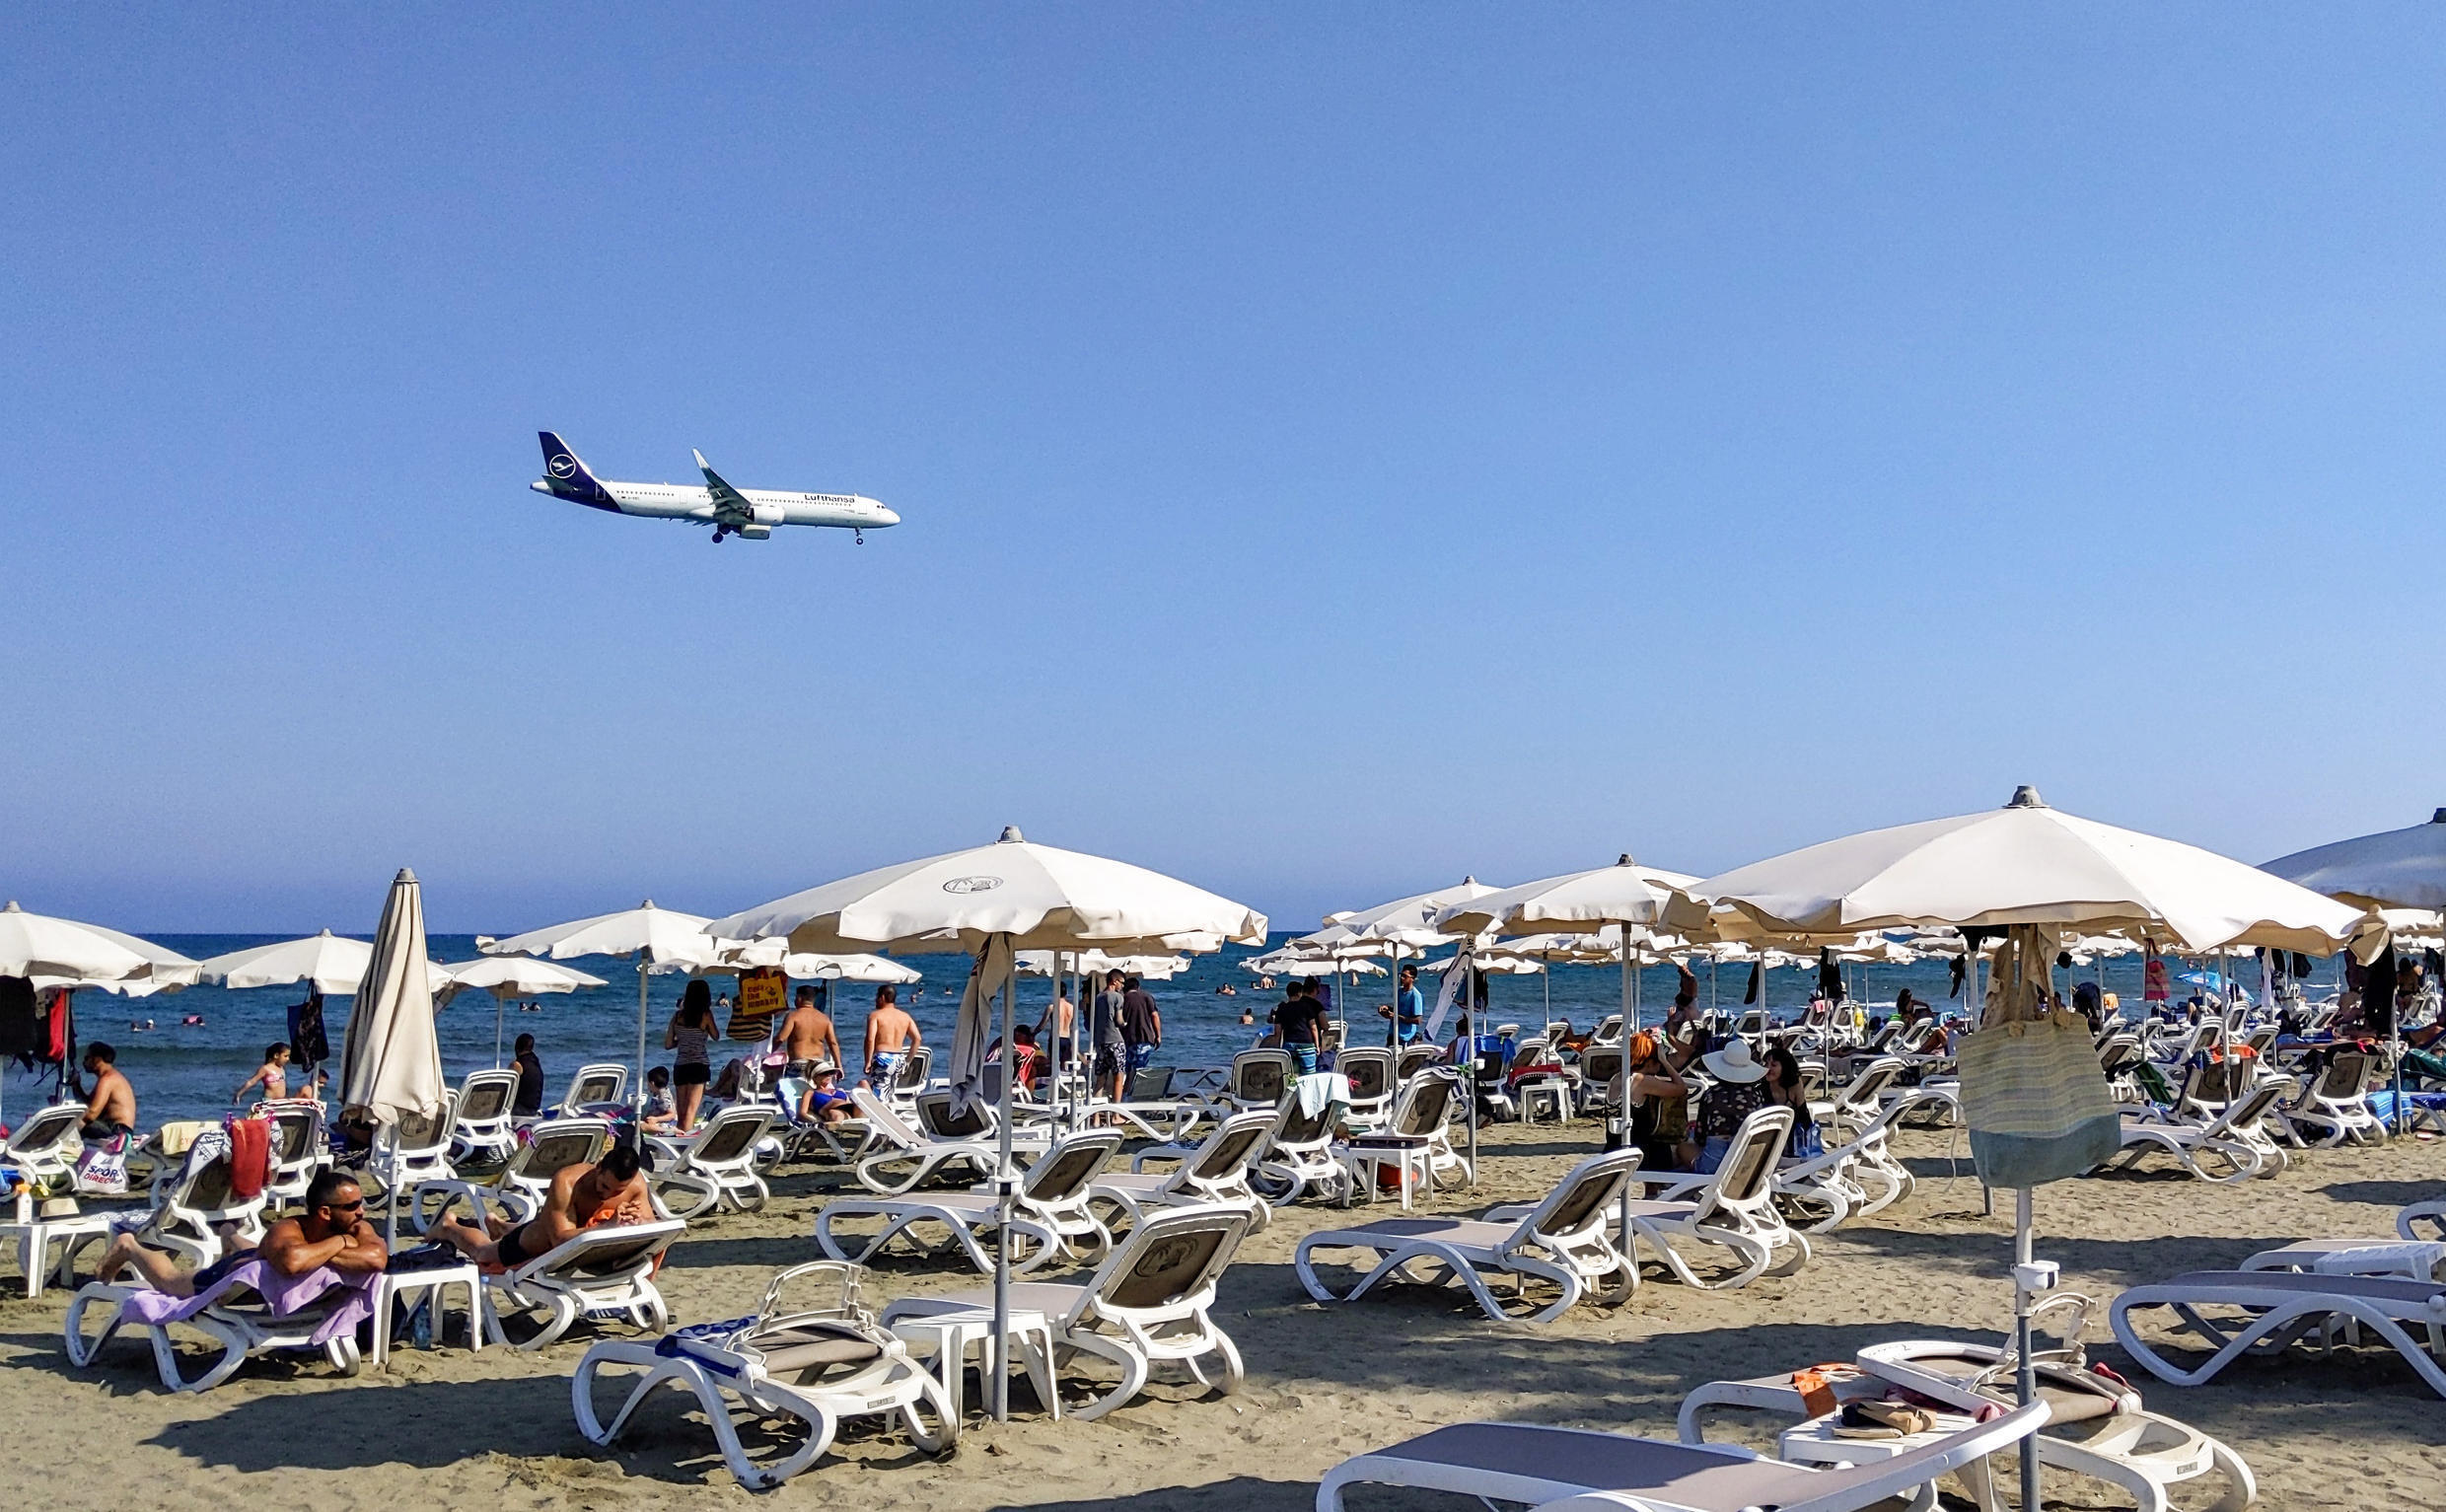 Cyprus has decided to scrap its 'golden passport' scheme after a television programme exposed its alleged abuse